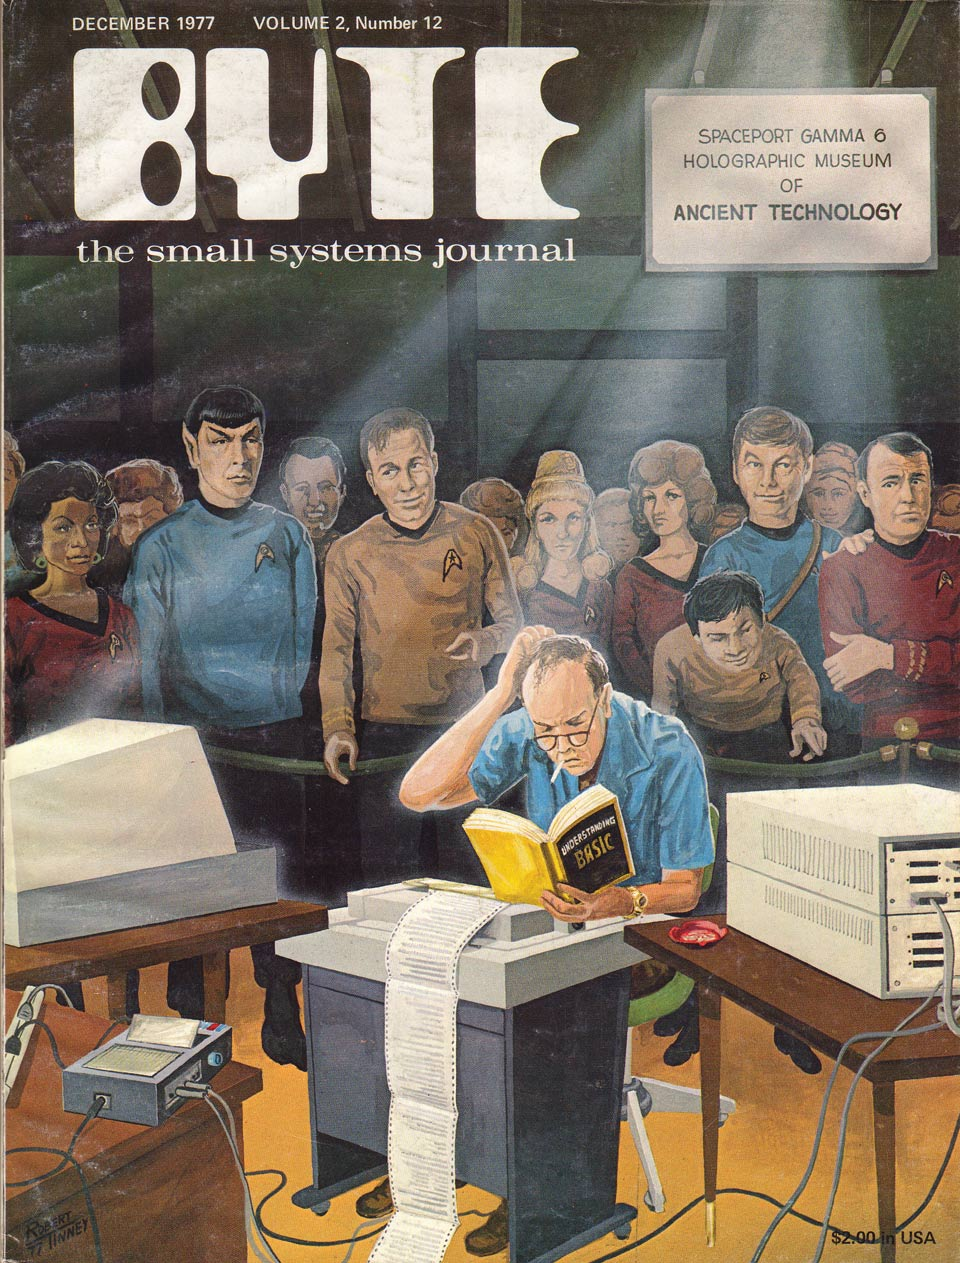 Cover of BYTE magazine - dec 1977